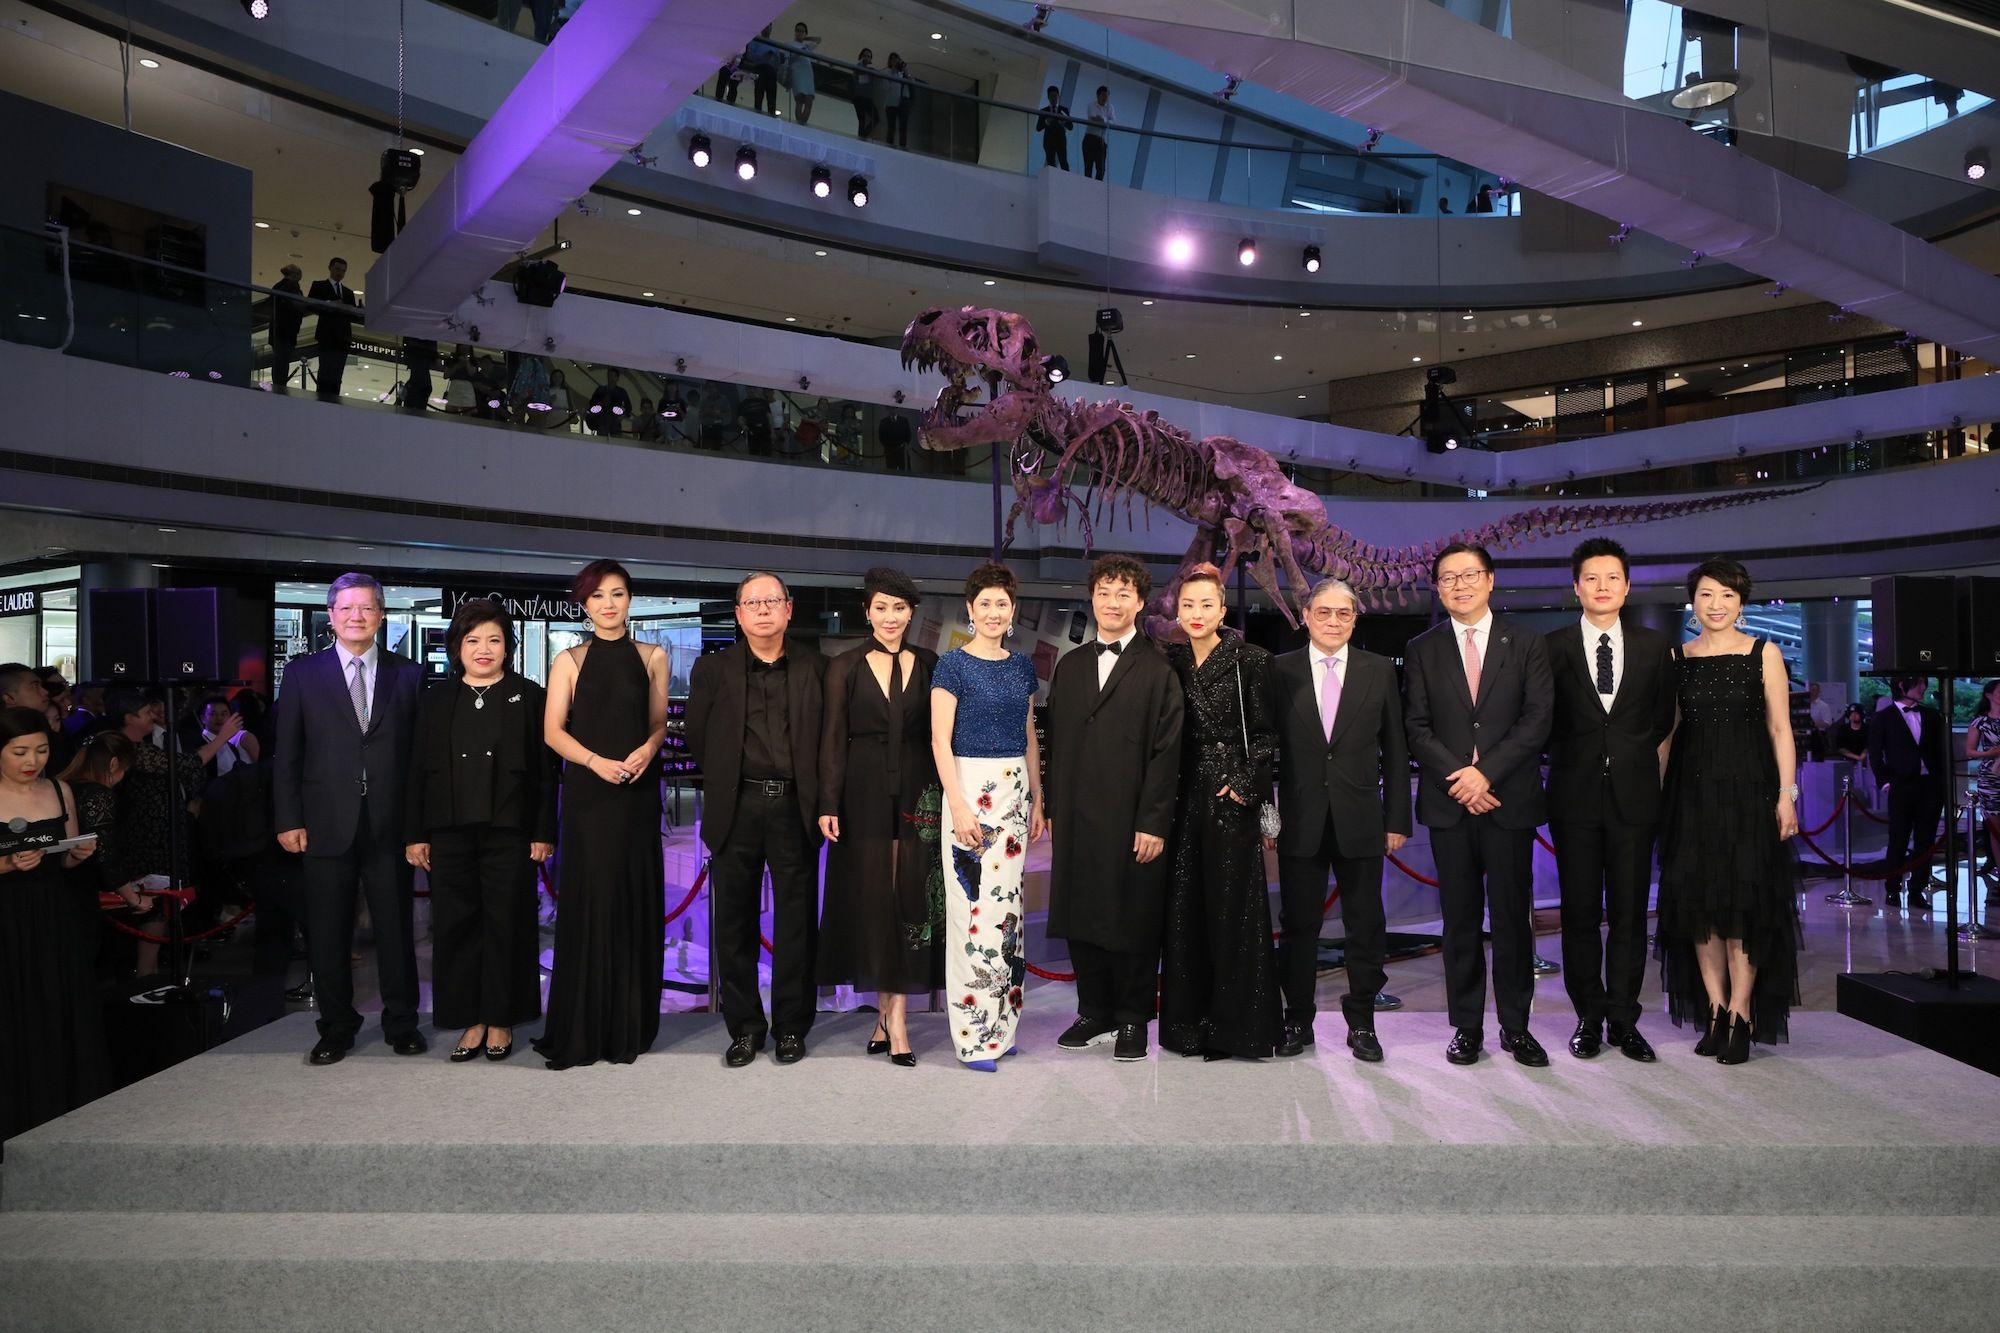 Patrick Sit, Maureen Fung, Miriam Yeung, Peter Lam, Carina Lau, Michelle Ong-Cheung, Eason Chan, Hilary Tsui, Timothy Fok, Frederick Ma, Leon Ko, Michelle Ma